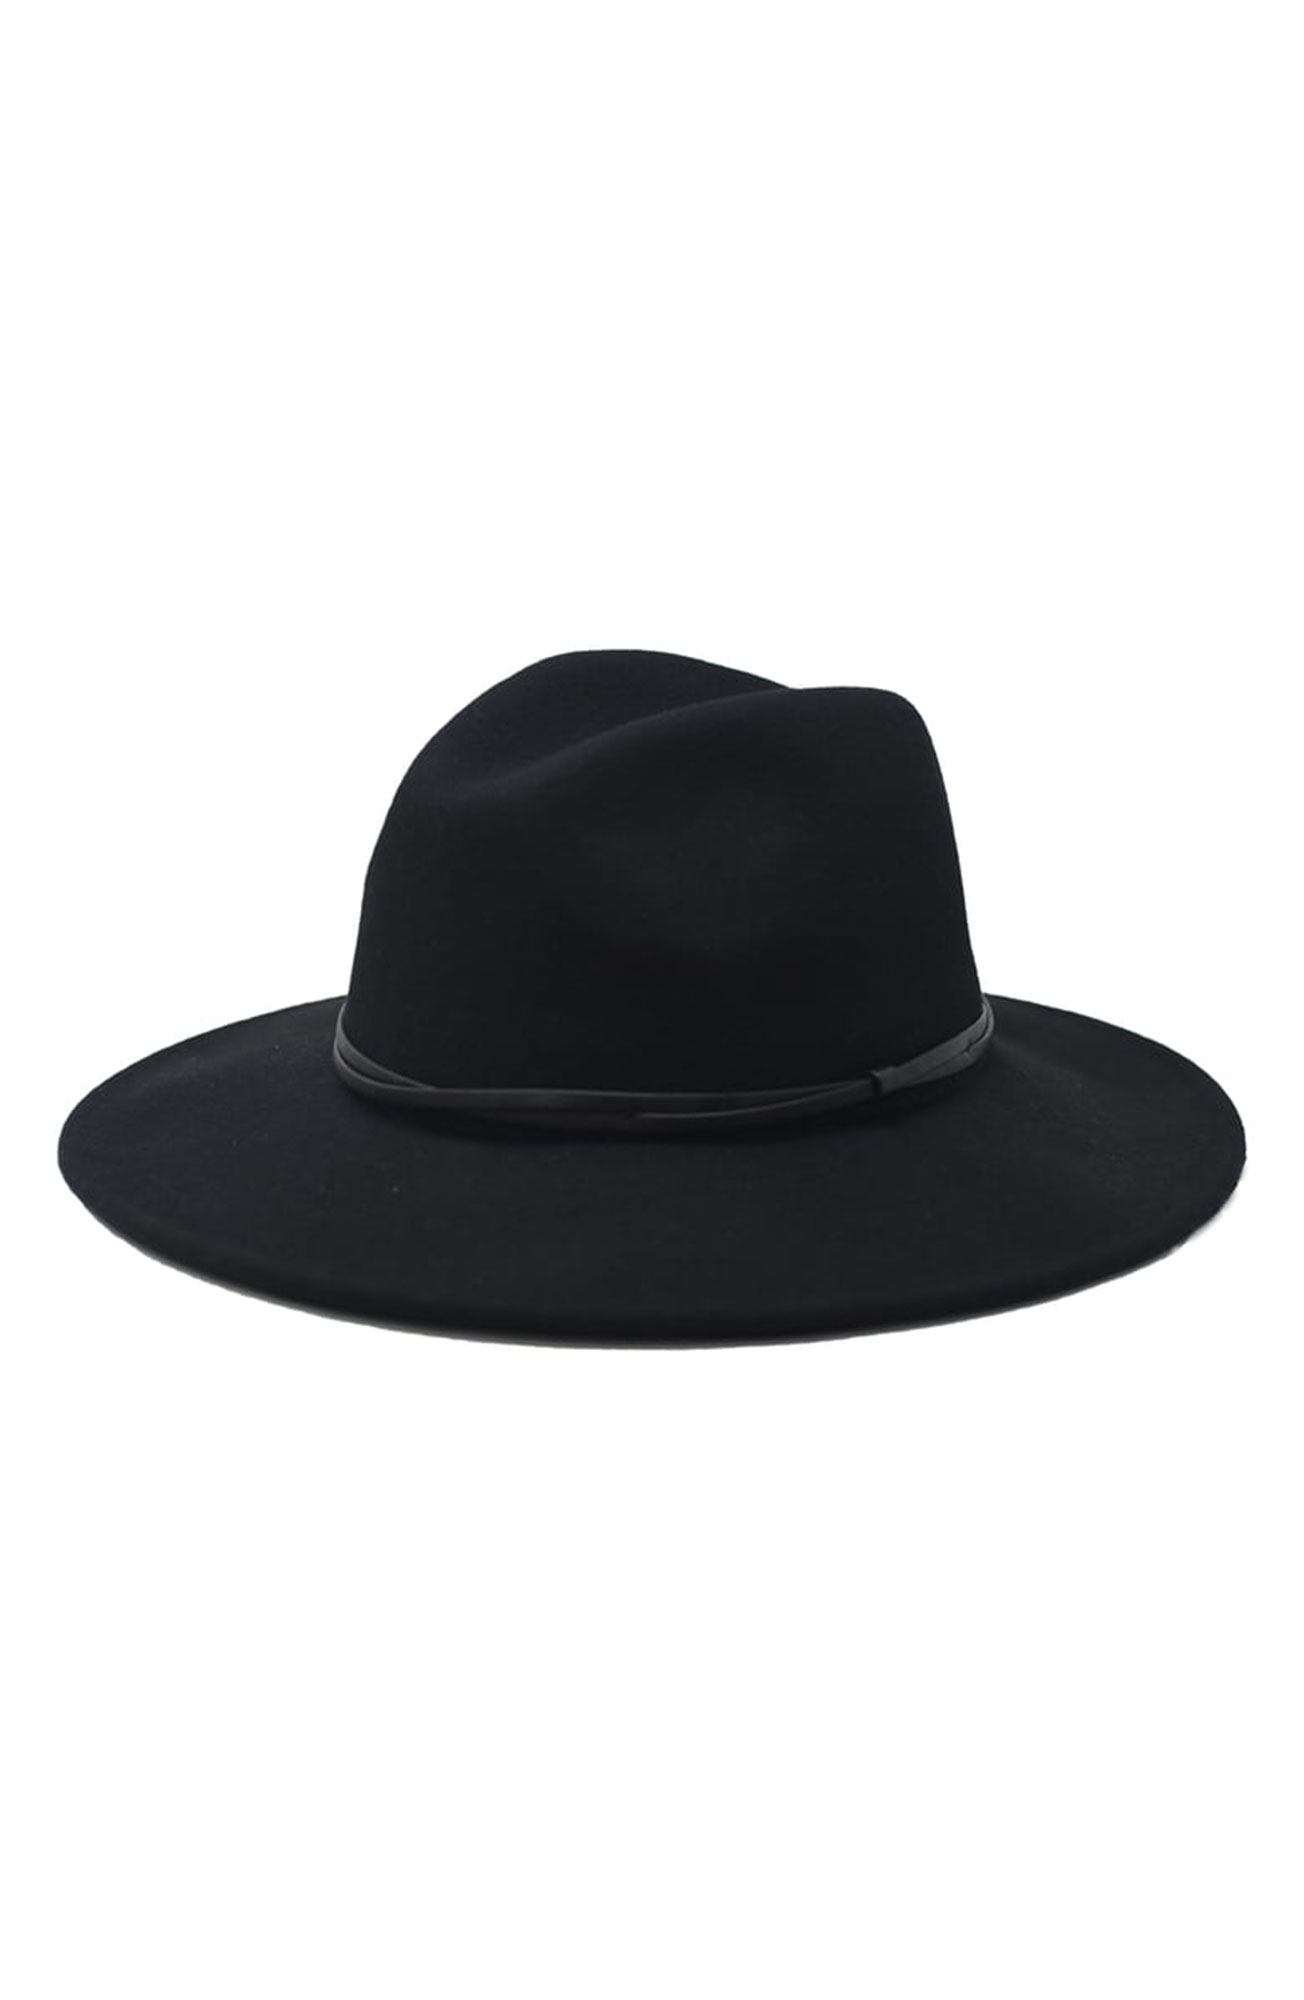 7 Black Panama Hats Inspired by Gigi Hadid¹s Œ90s Wedding Style - You really can't go wrong with this all-black-everything wool design. $59, nordstrom.com